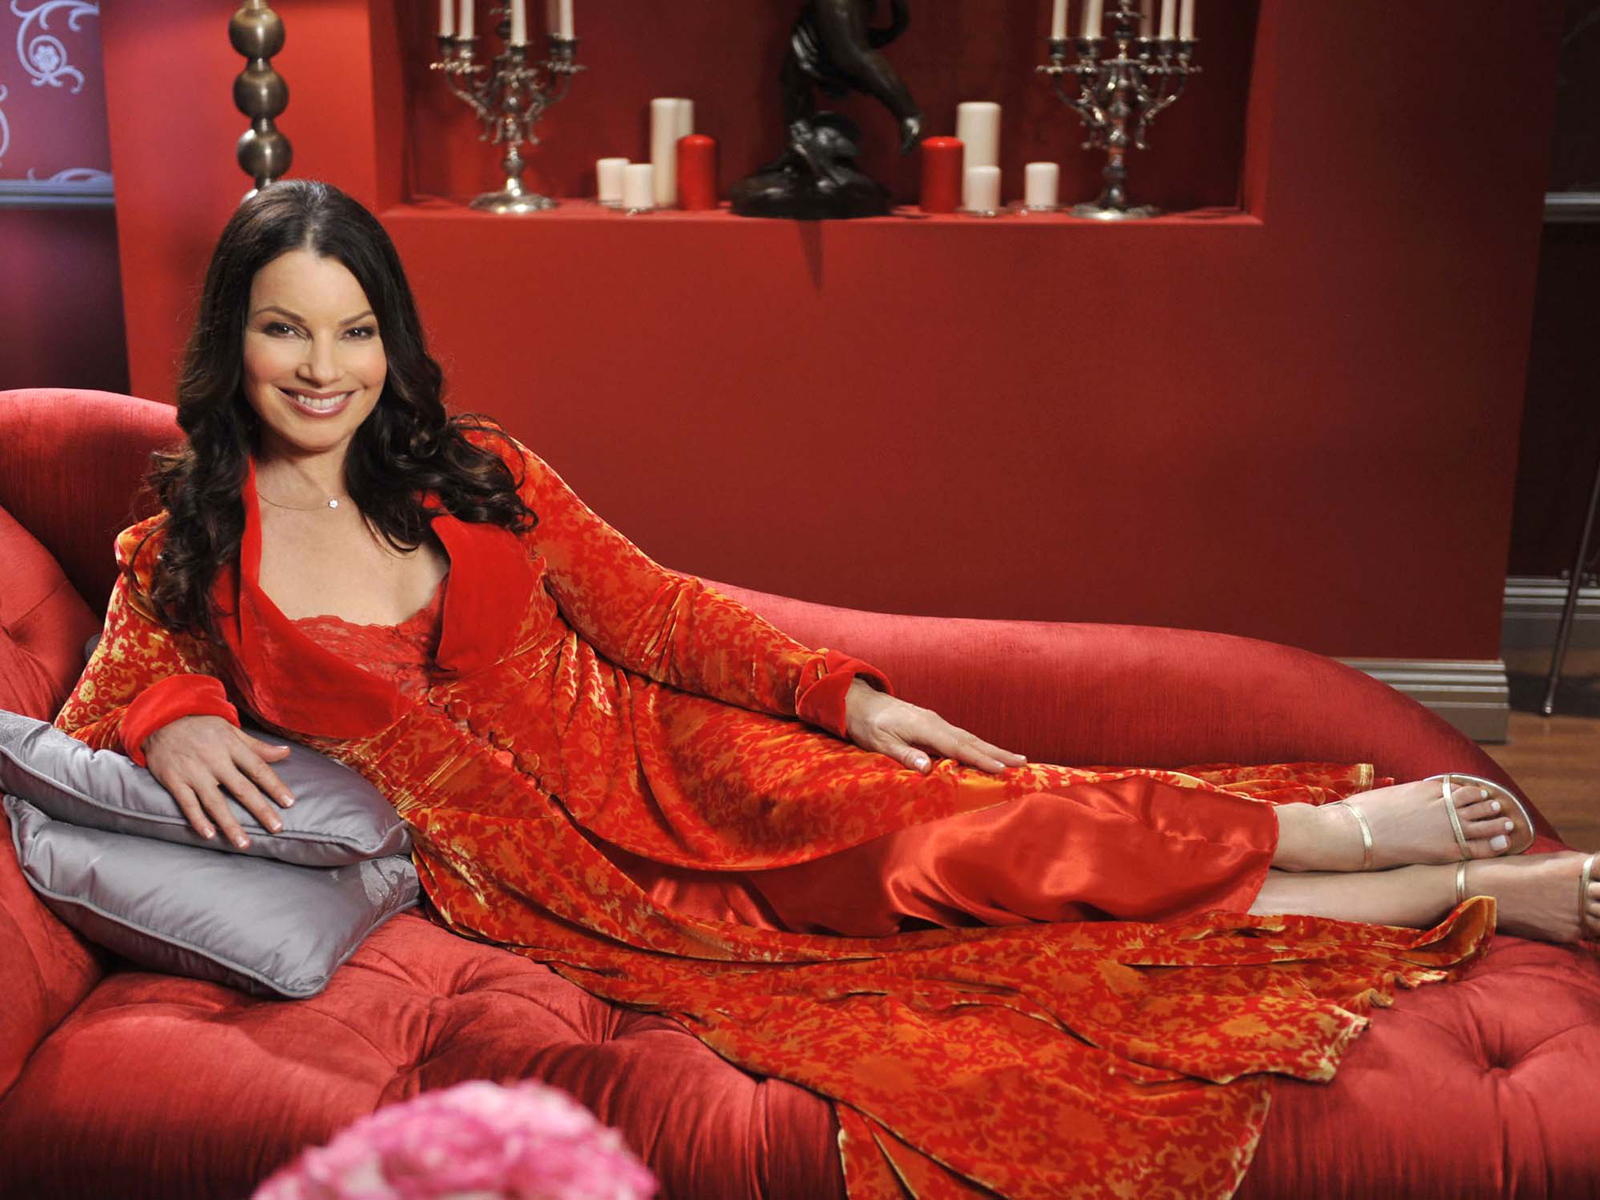 Feet Fran Drescher nudes (15 photo), Pussy, Is a cute, Boobs, panties 2019